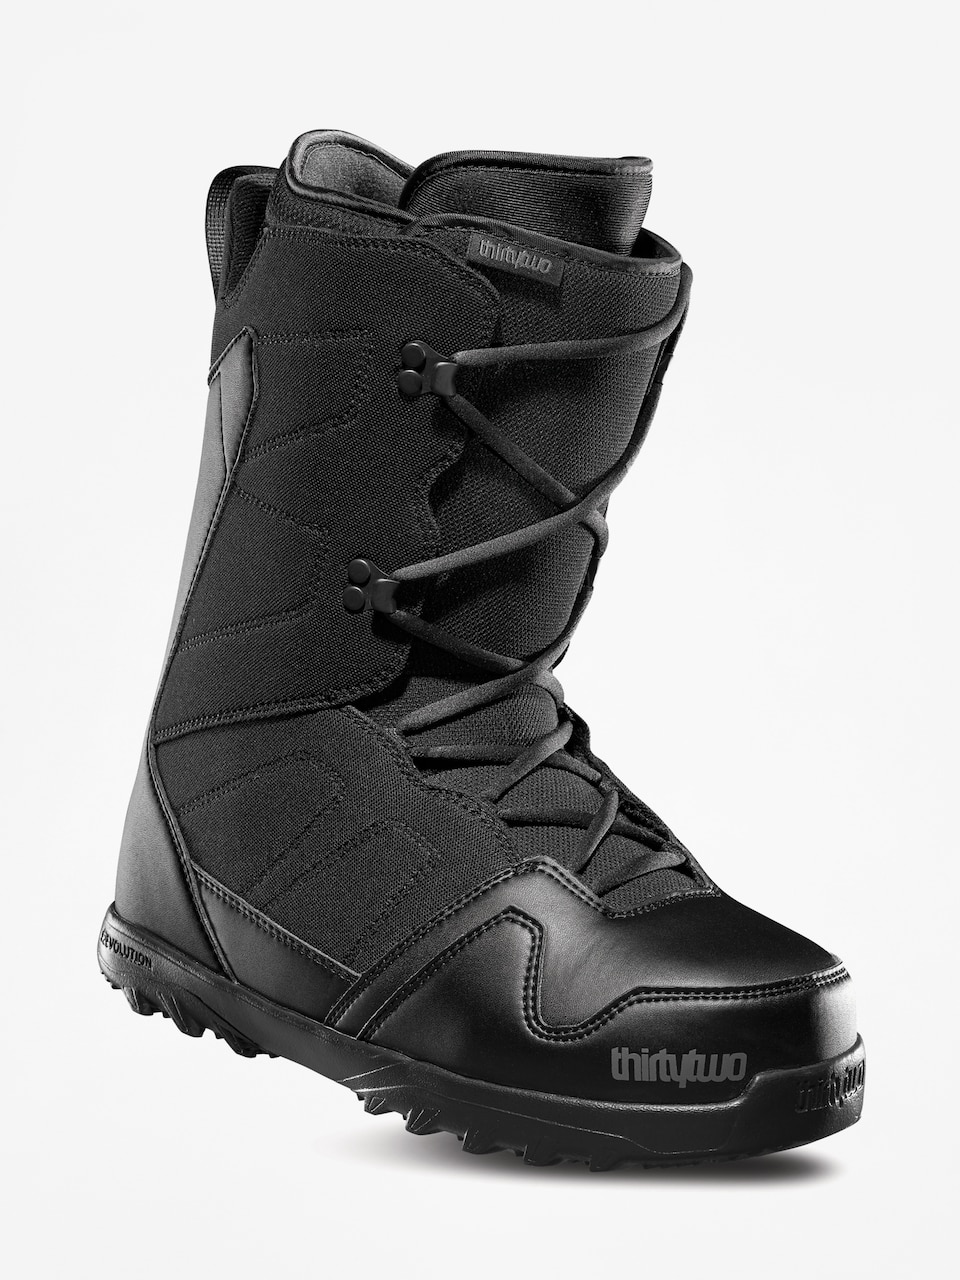 Black//Red 8.5 thirtytwo Session Womens 18 Snowboard Boots